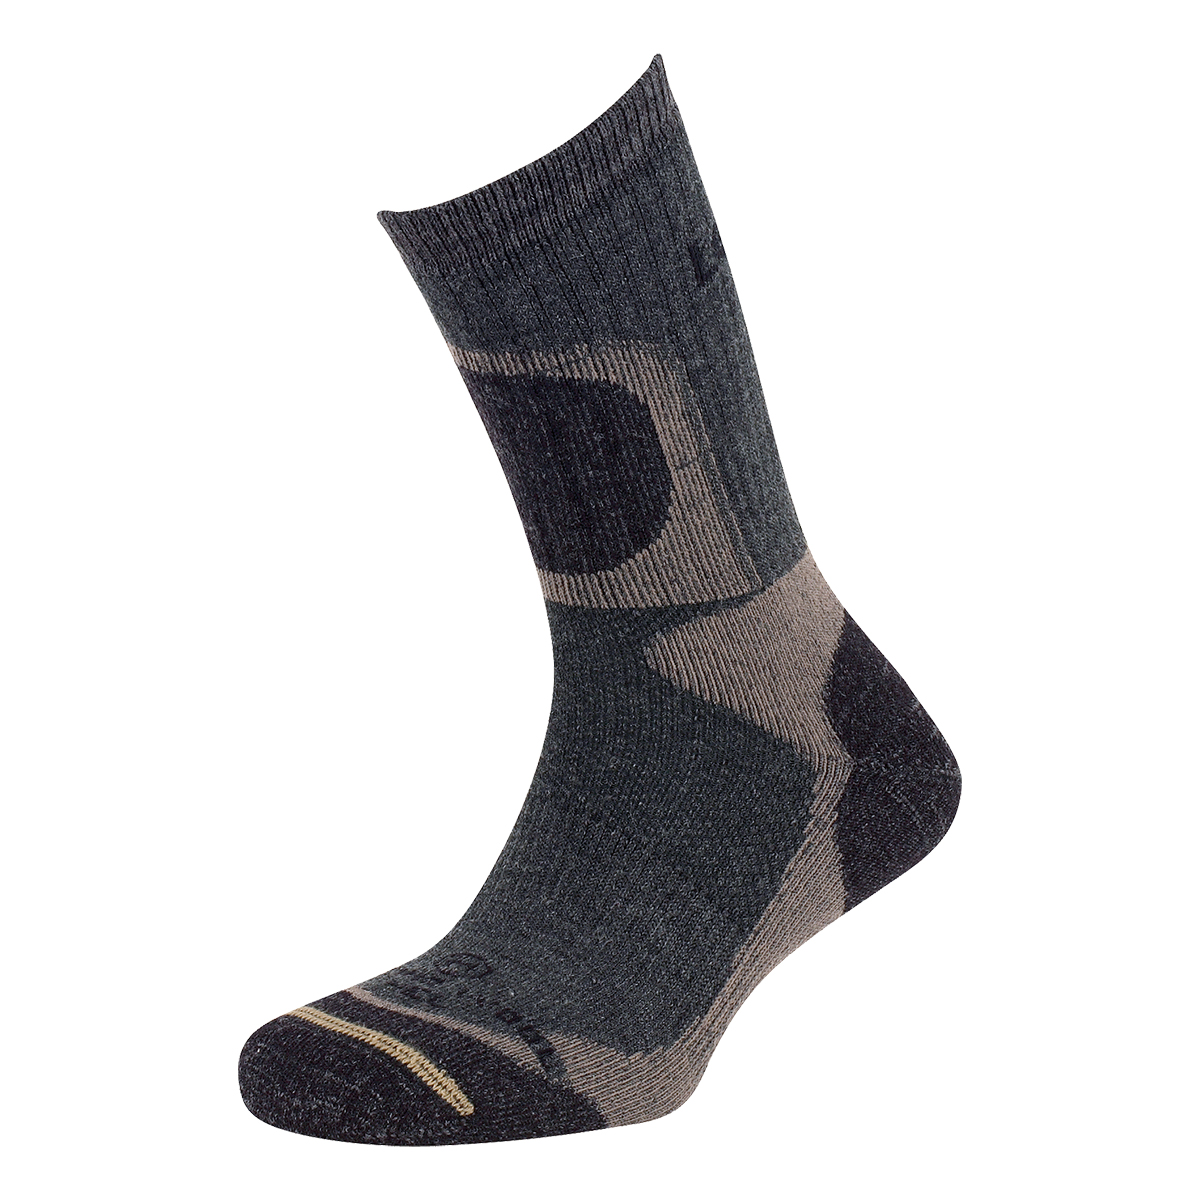 Lorpen Socken Hunting Coolmax (2er Pack) im Pareyshop